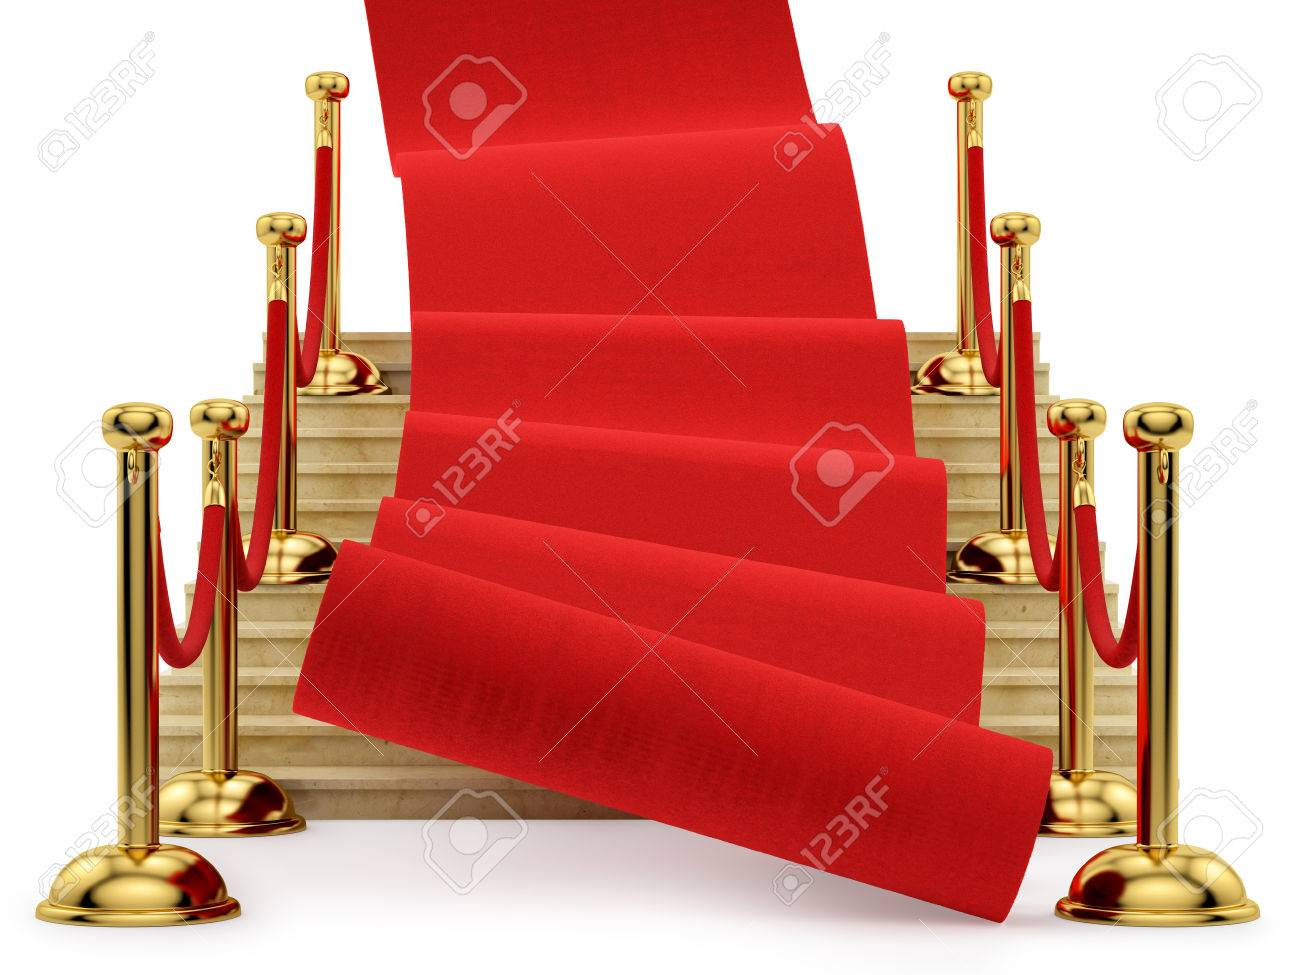 red carpet rolling down the stairs, isolated on white Stock Photo - 23367603